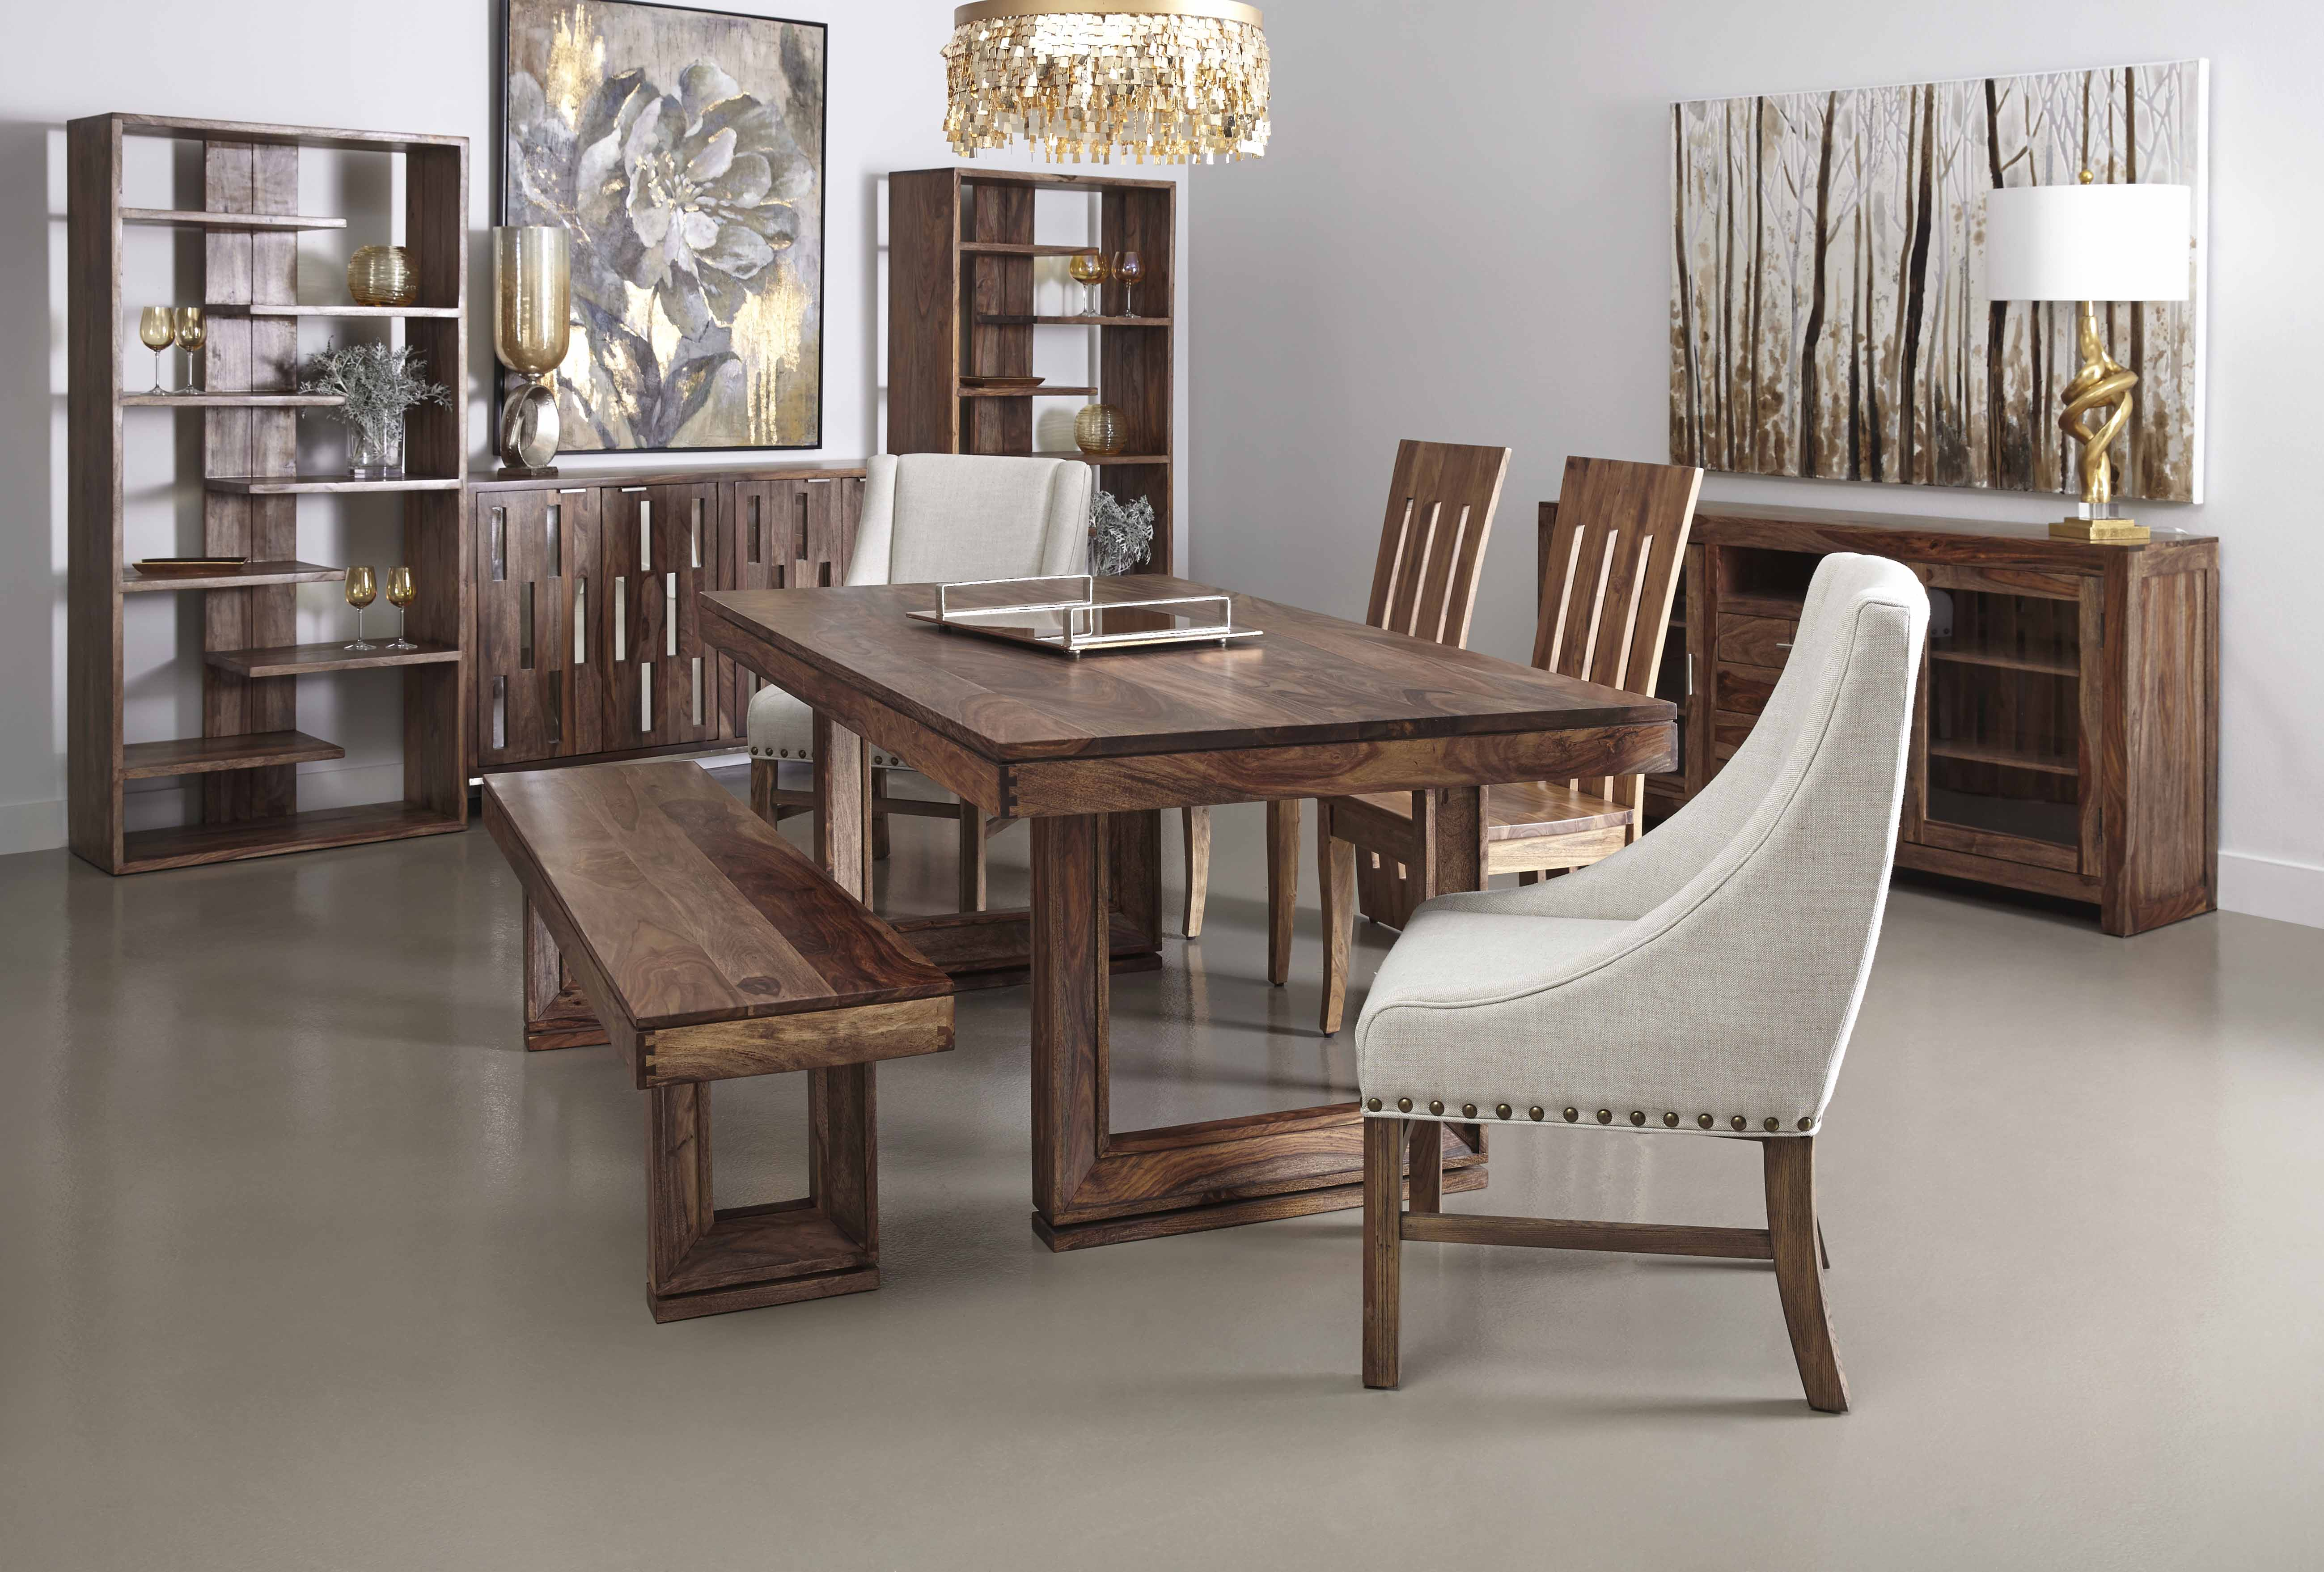 coast brownstone dining room set with accent chairs ctc for table click enlarge pier imports patio furniture solid wood threshold bathroom flooring one chair cushions cream oak